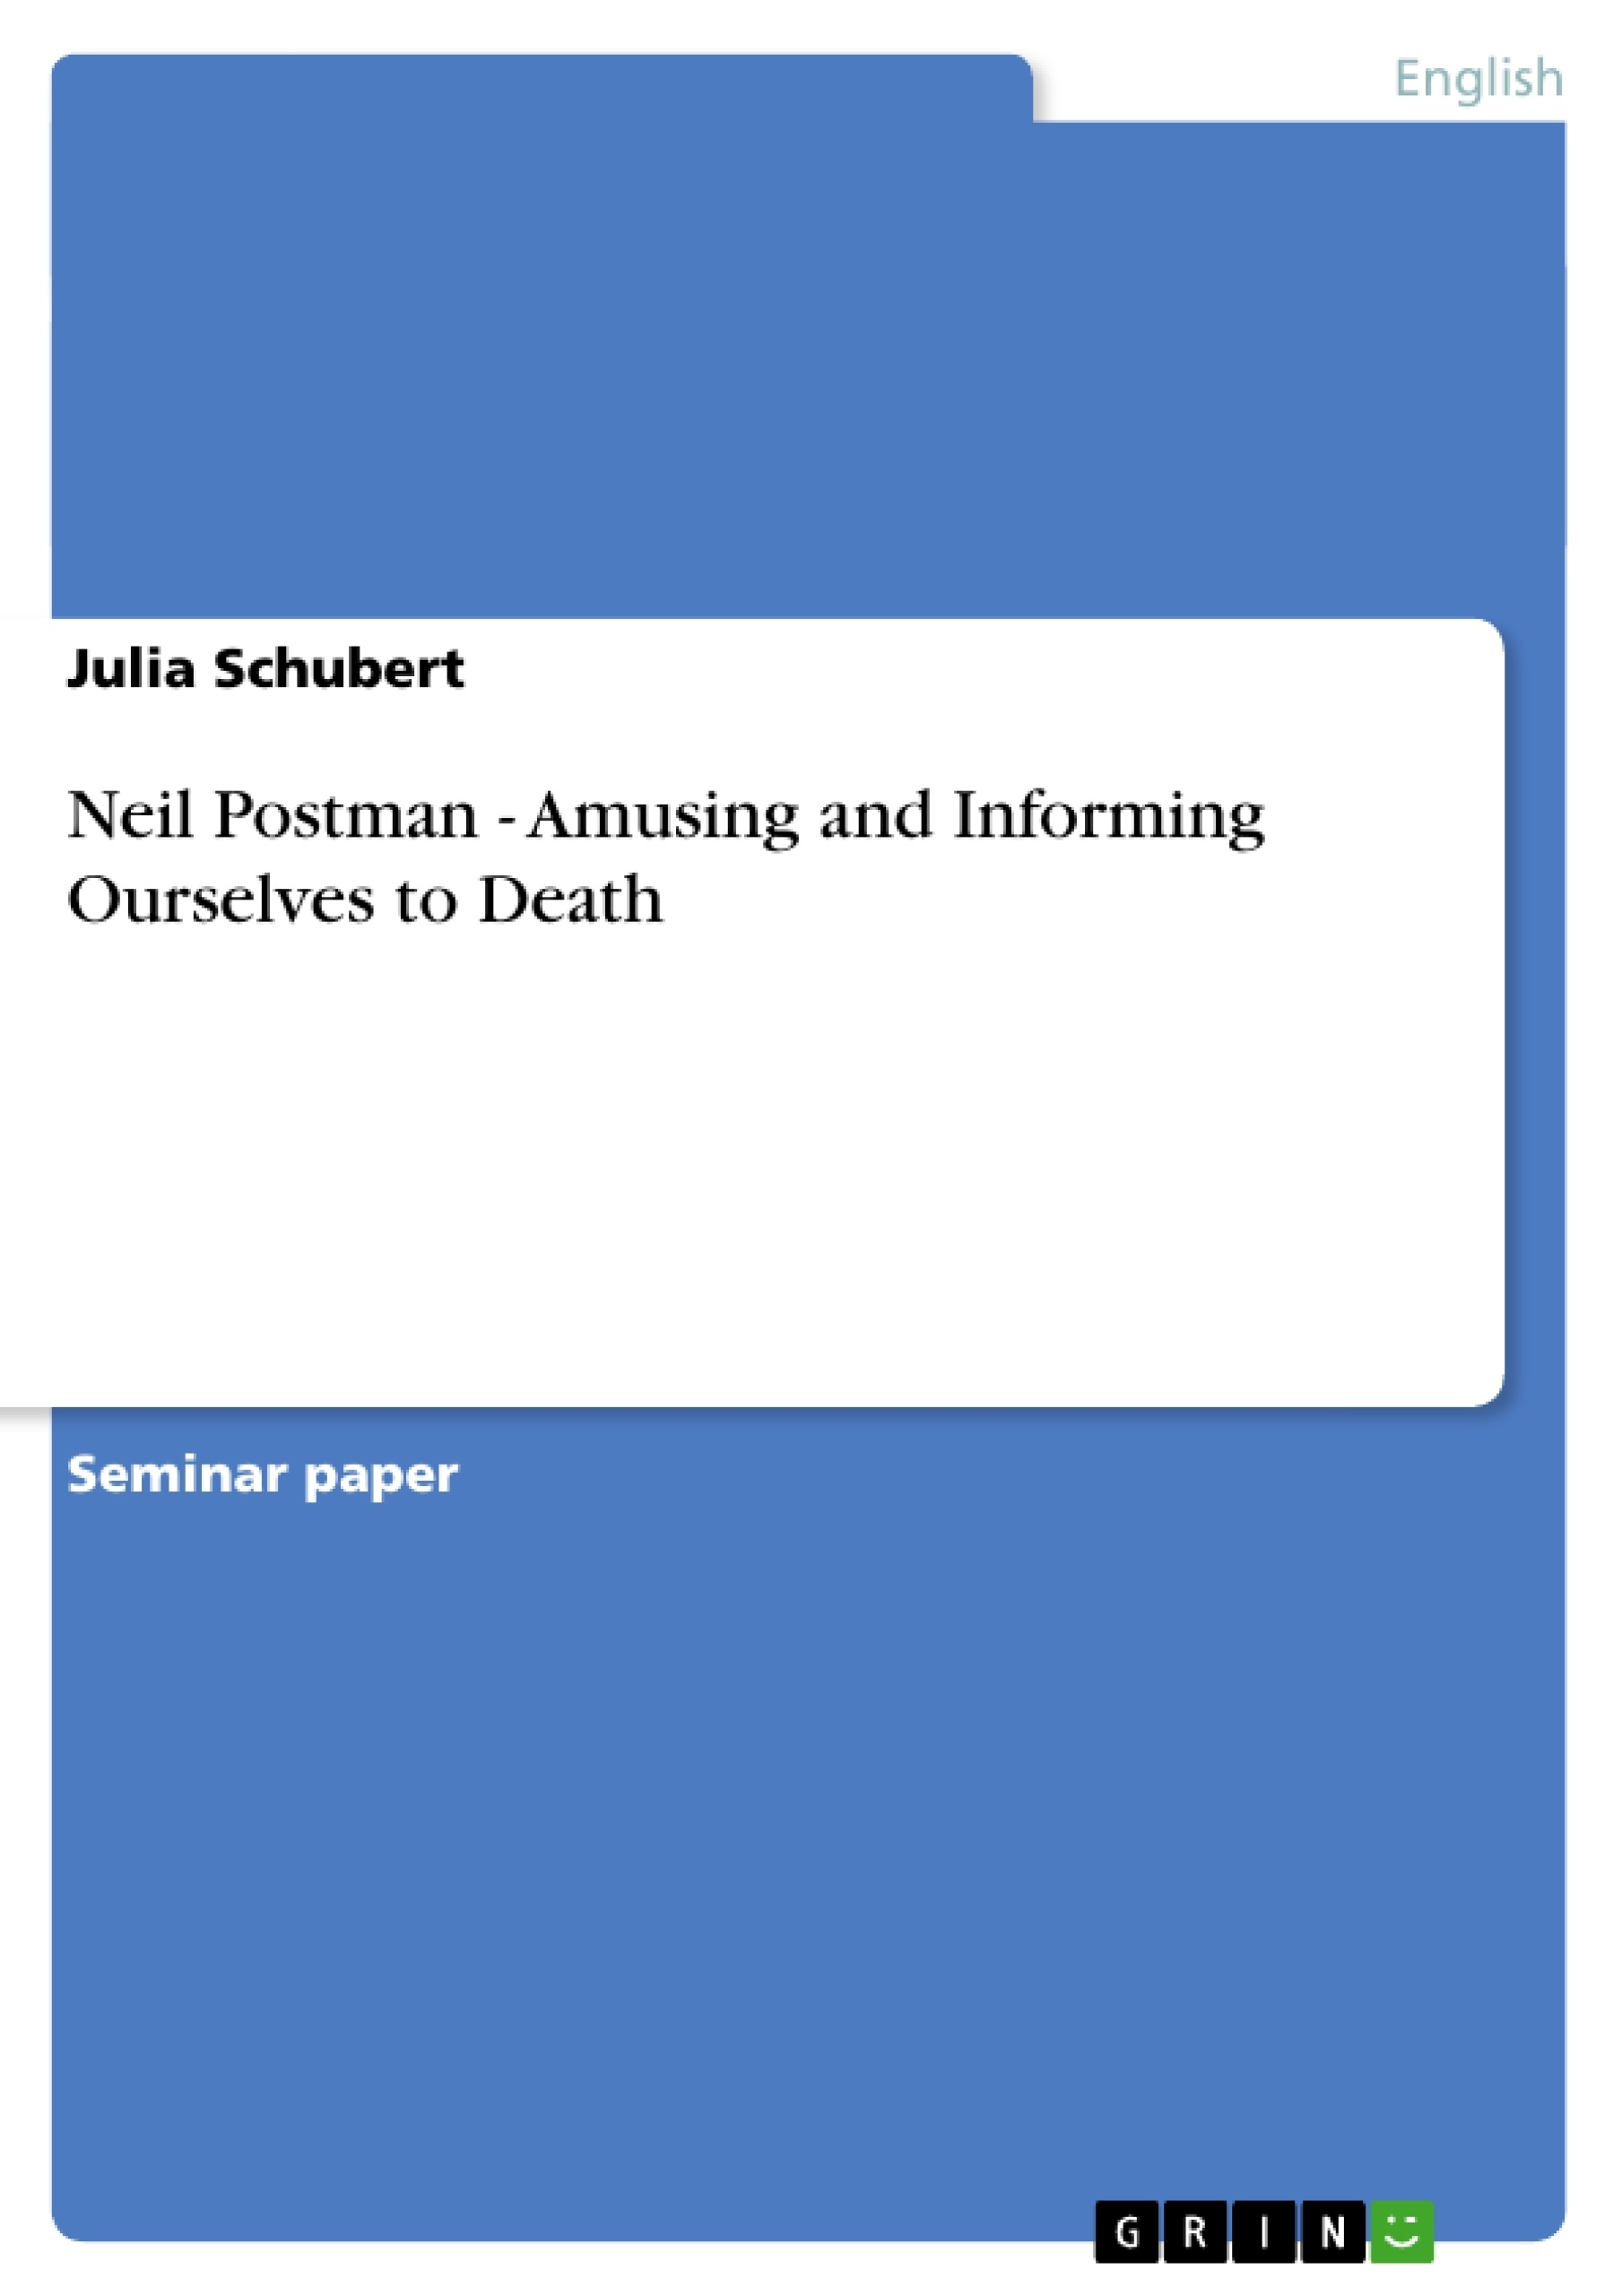 Title: Neil Postman - Amusing and Informing Ourselves to Death